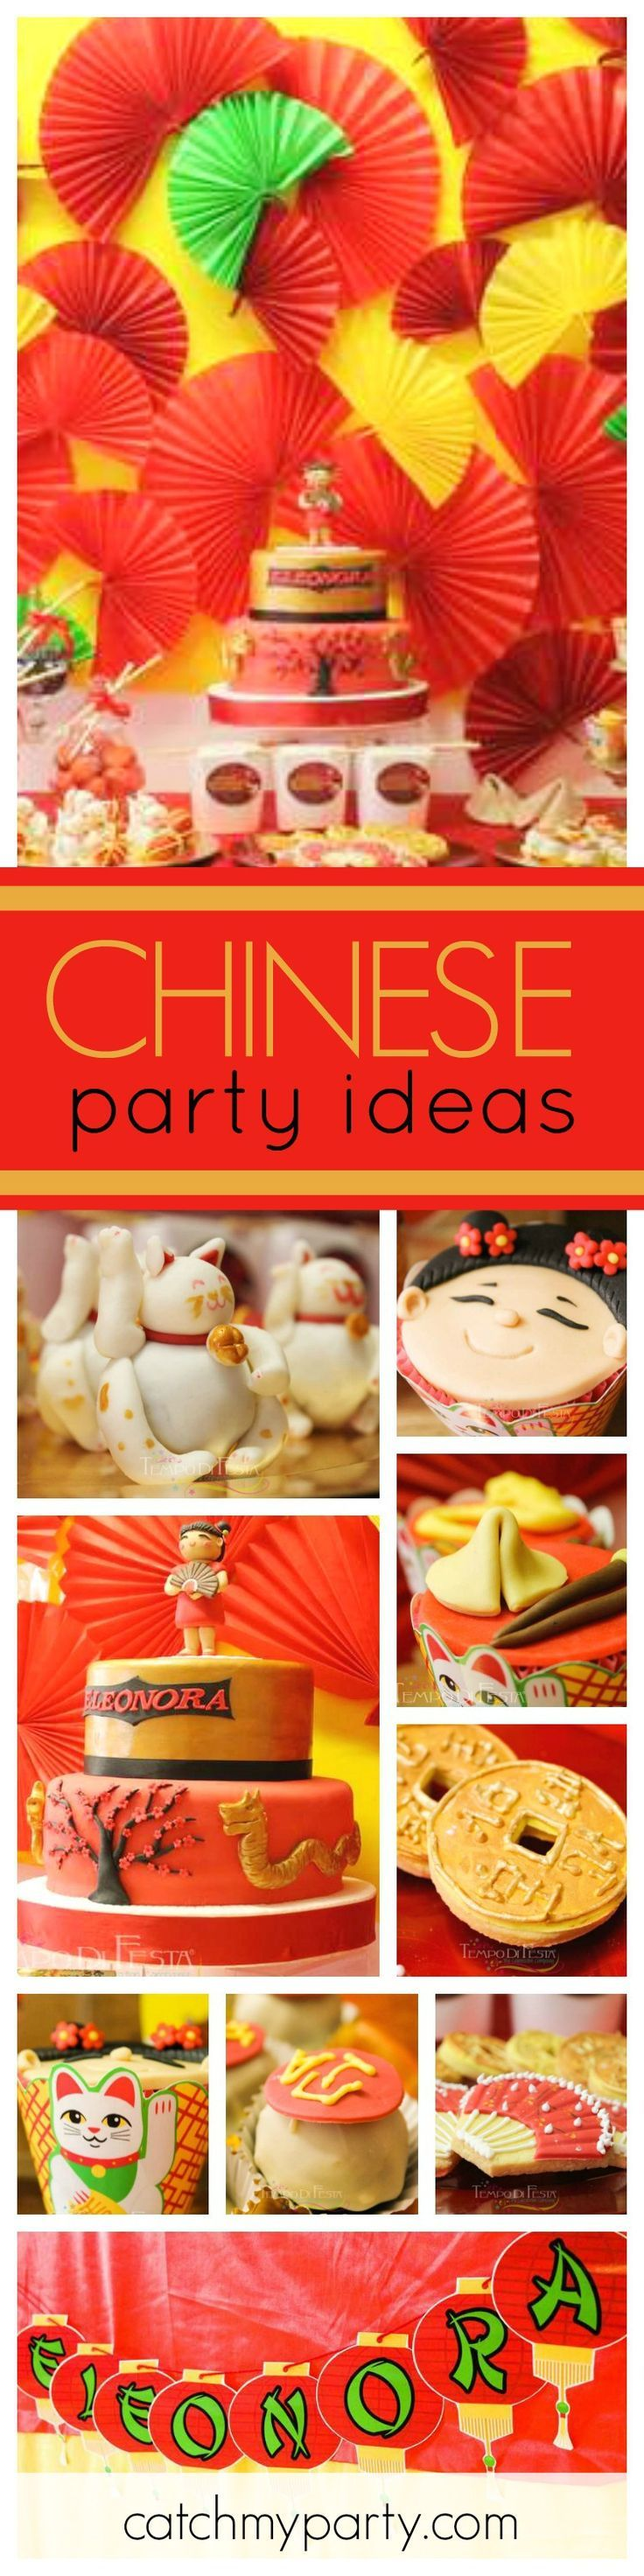 This Chinese Birthday Party will take you all the way to China. The desserts are so beautifully decorated and the Birthday Cake is awesome!